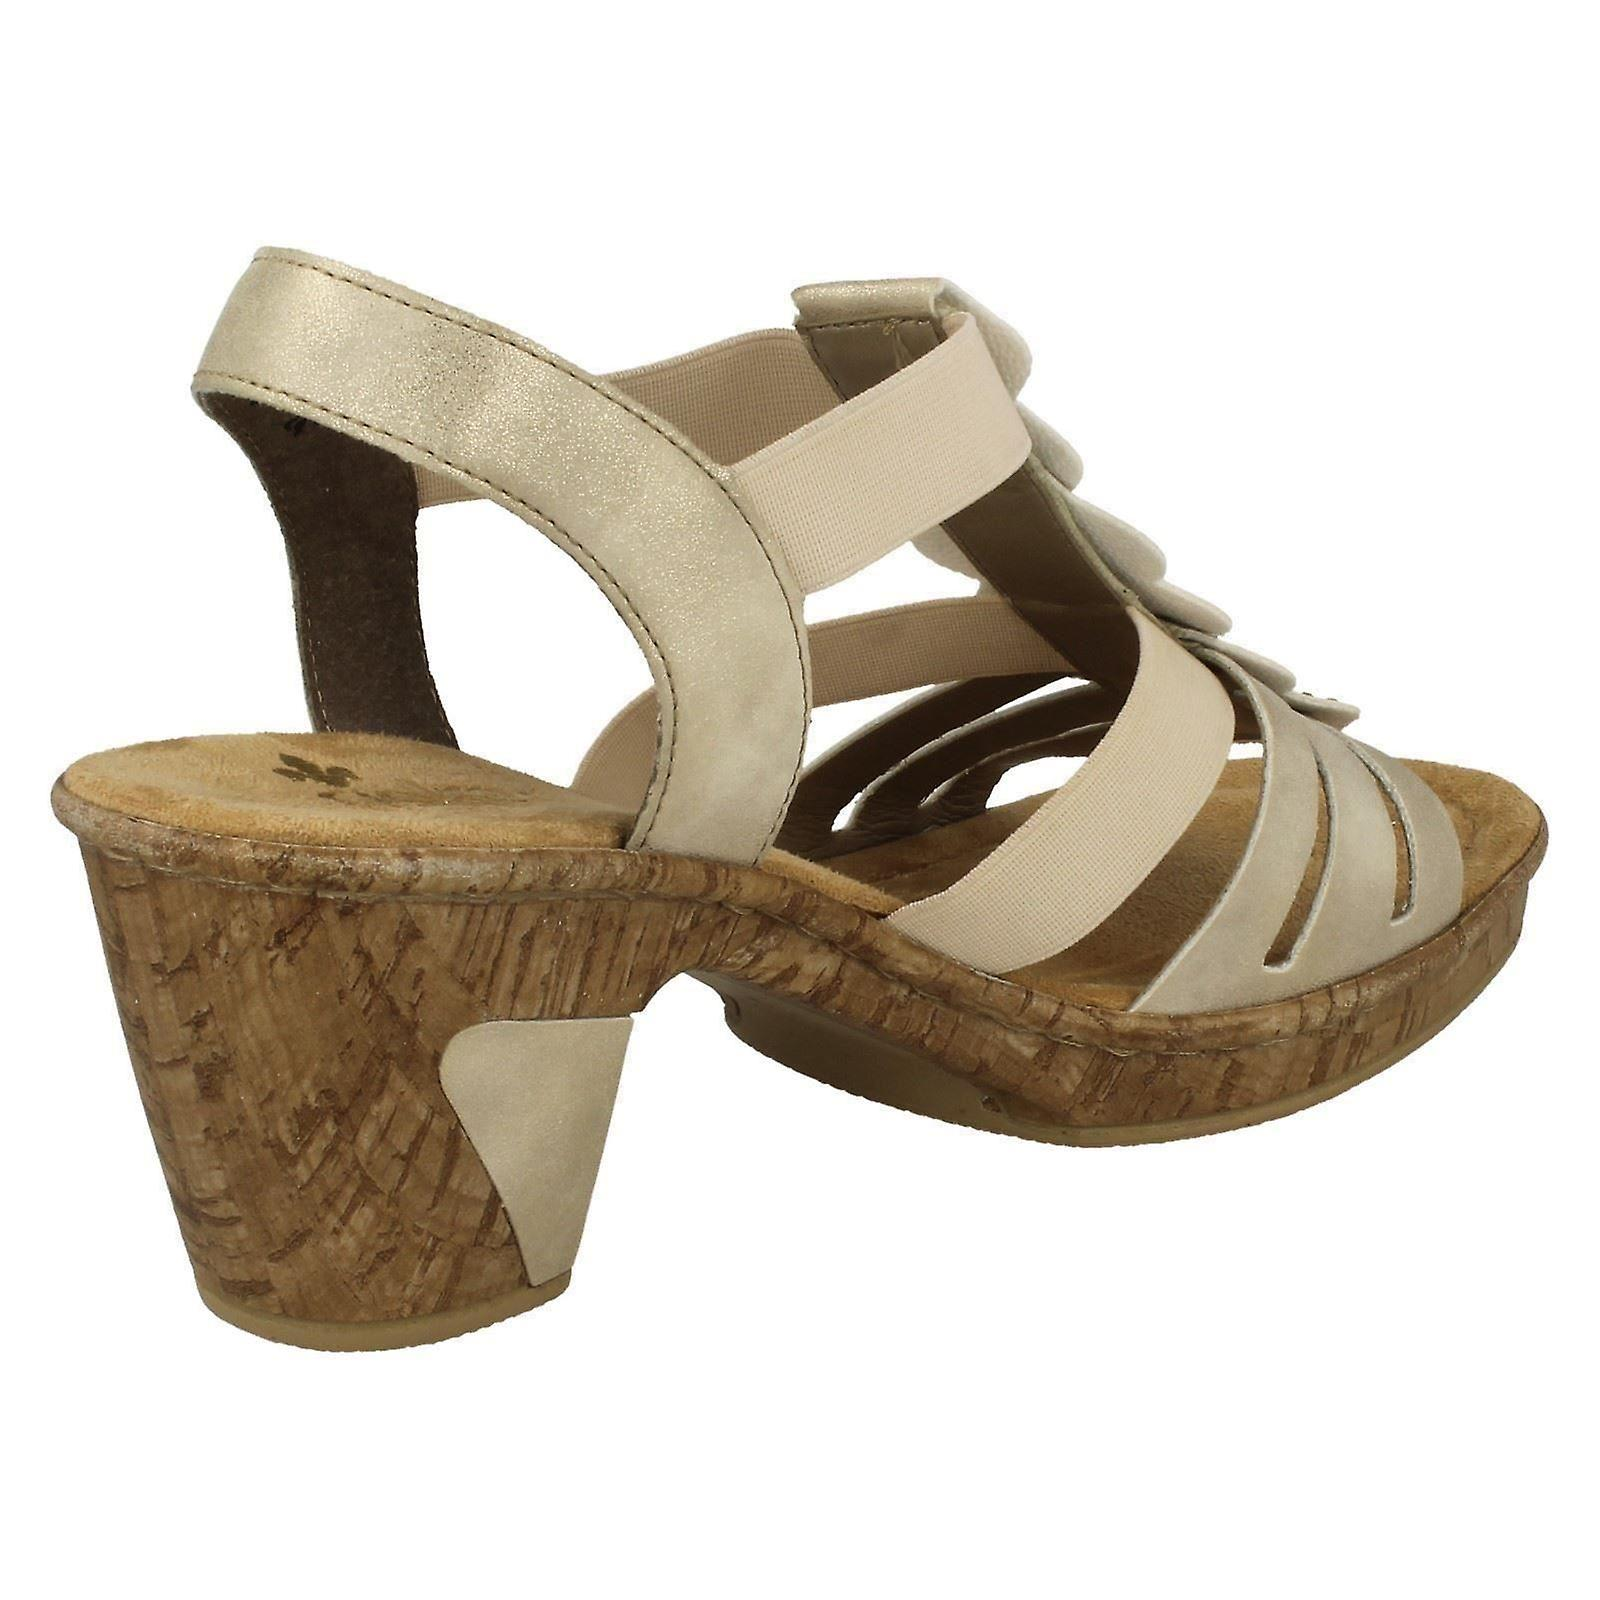 35b32a84bf26f Ladies Rieker Slingback Heeled Sandals 69702-60 - Beige Synthetic - UK Size  8 -